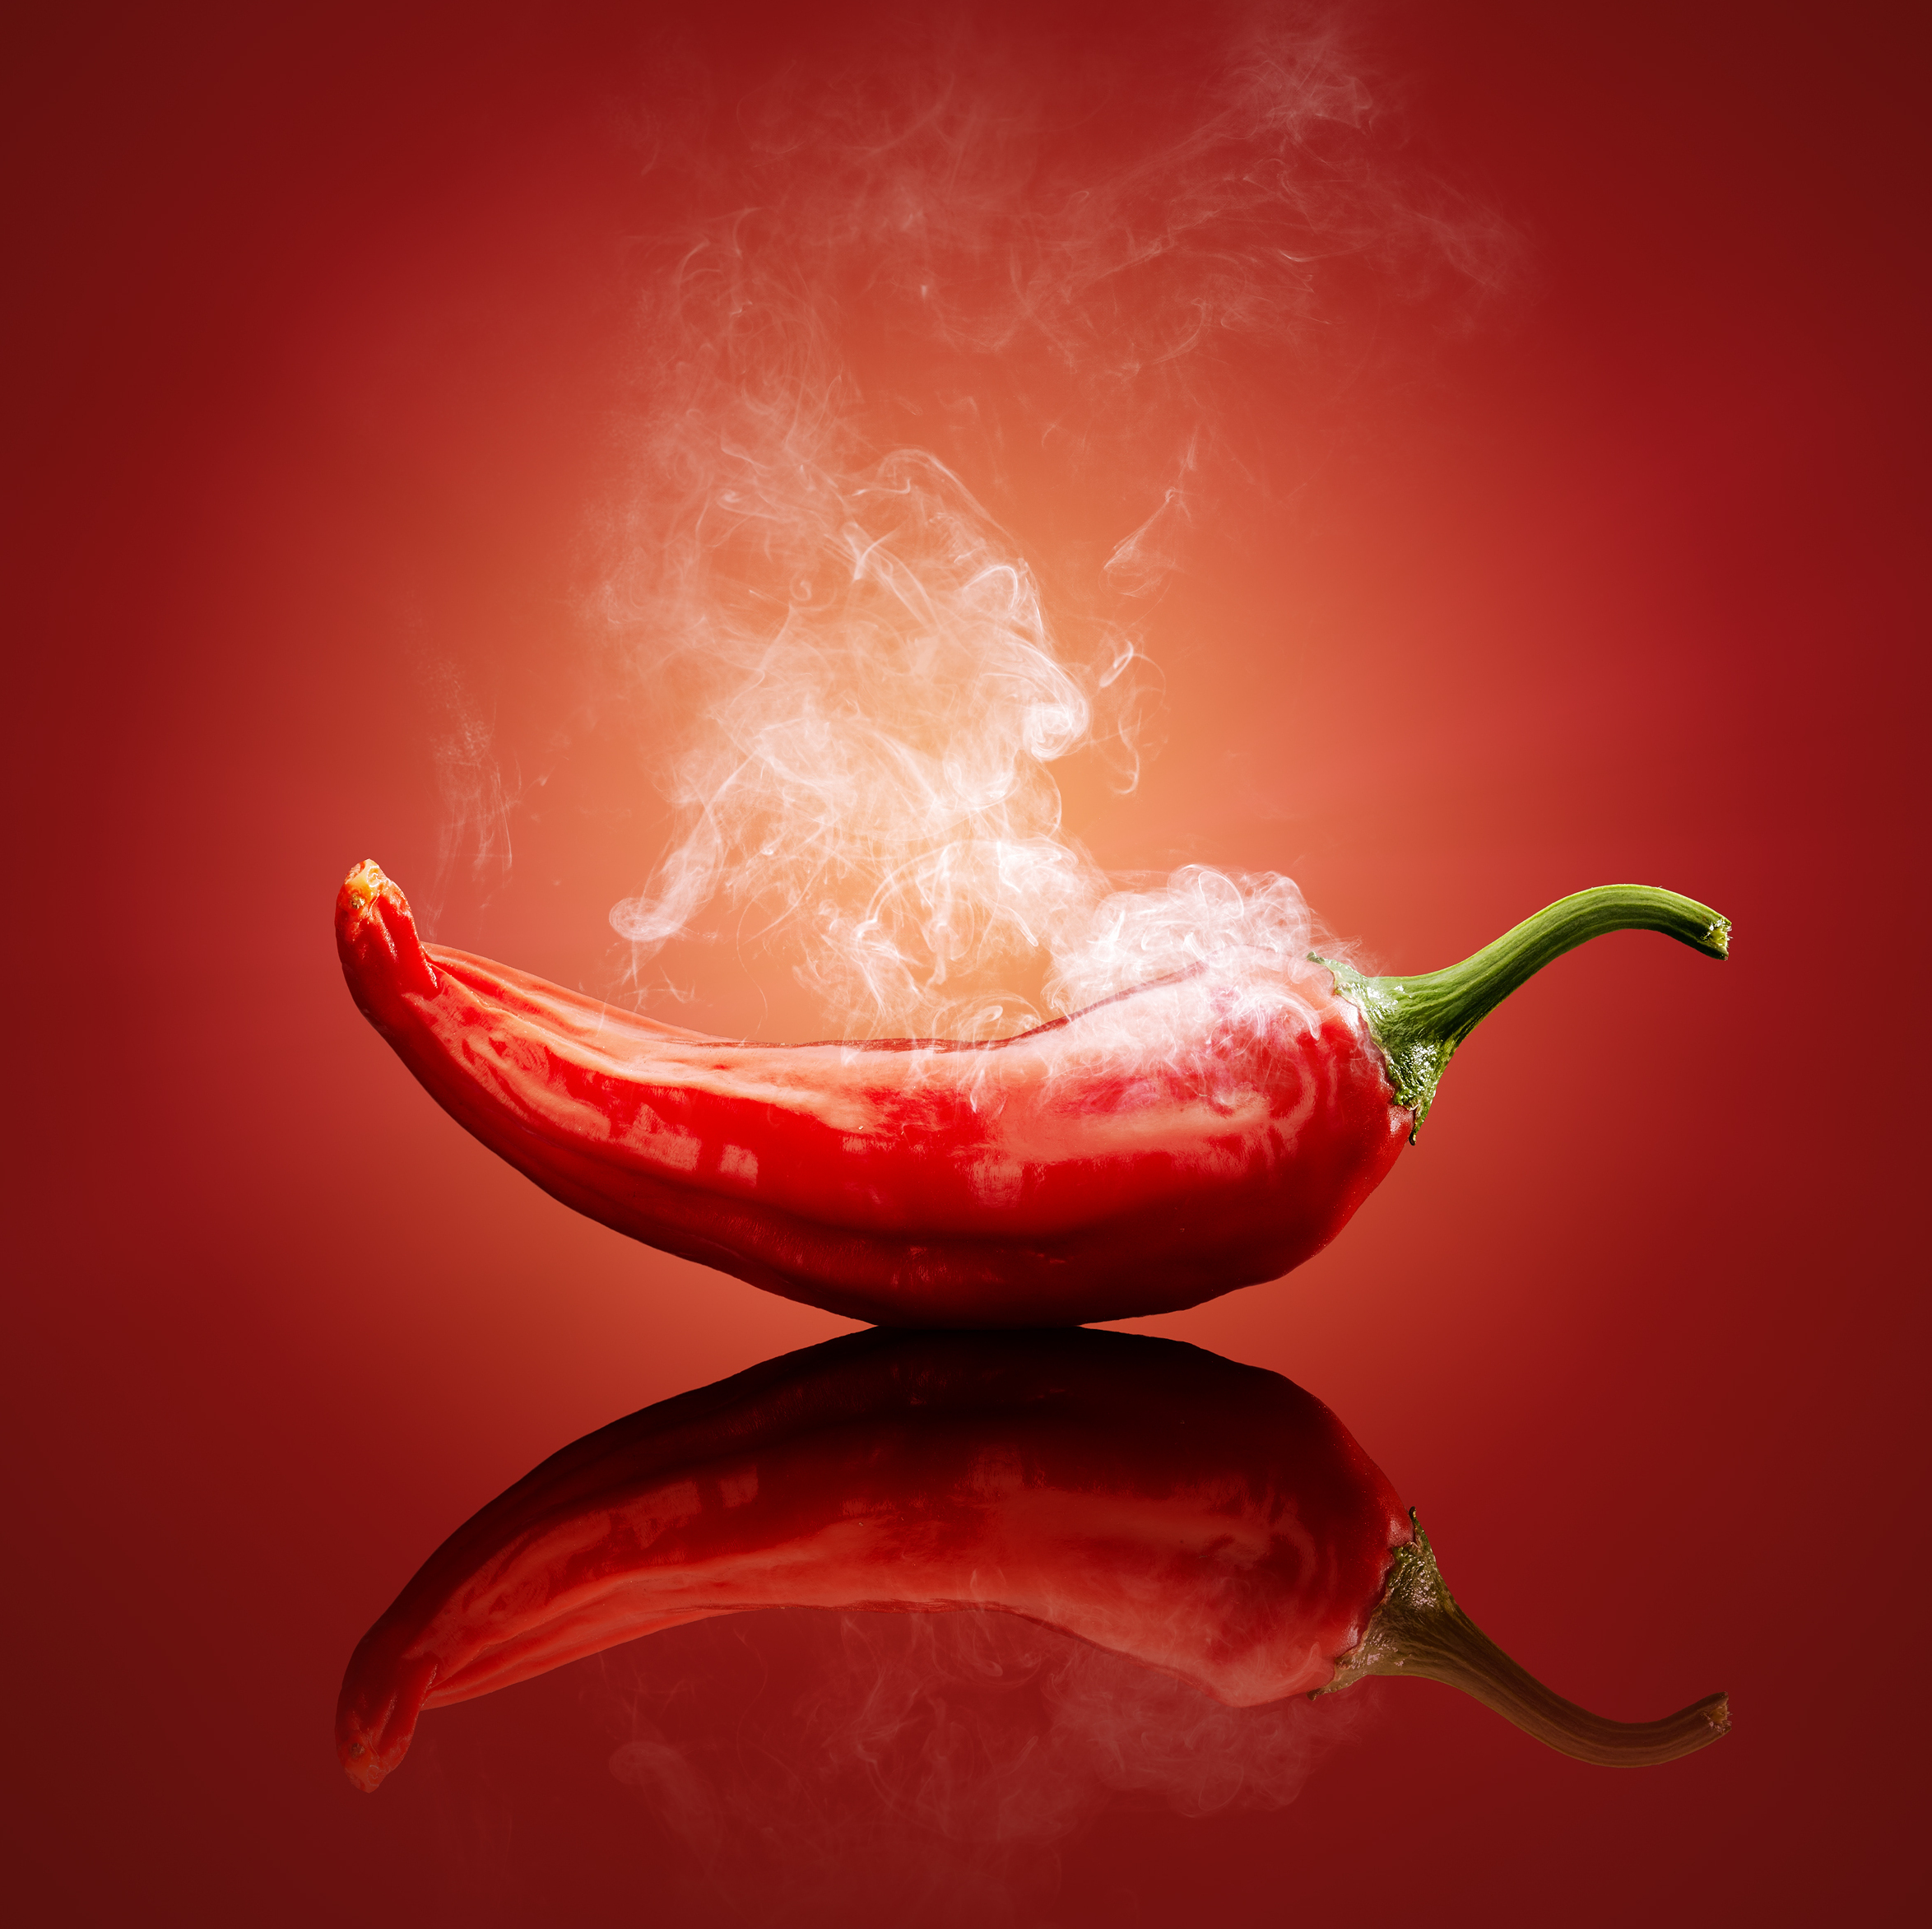 ff-hot-pepper